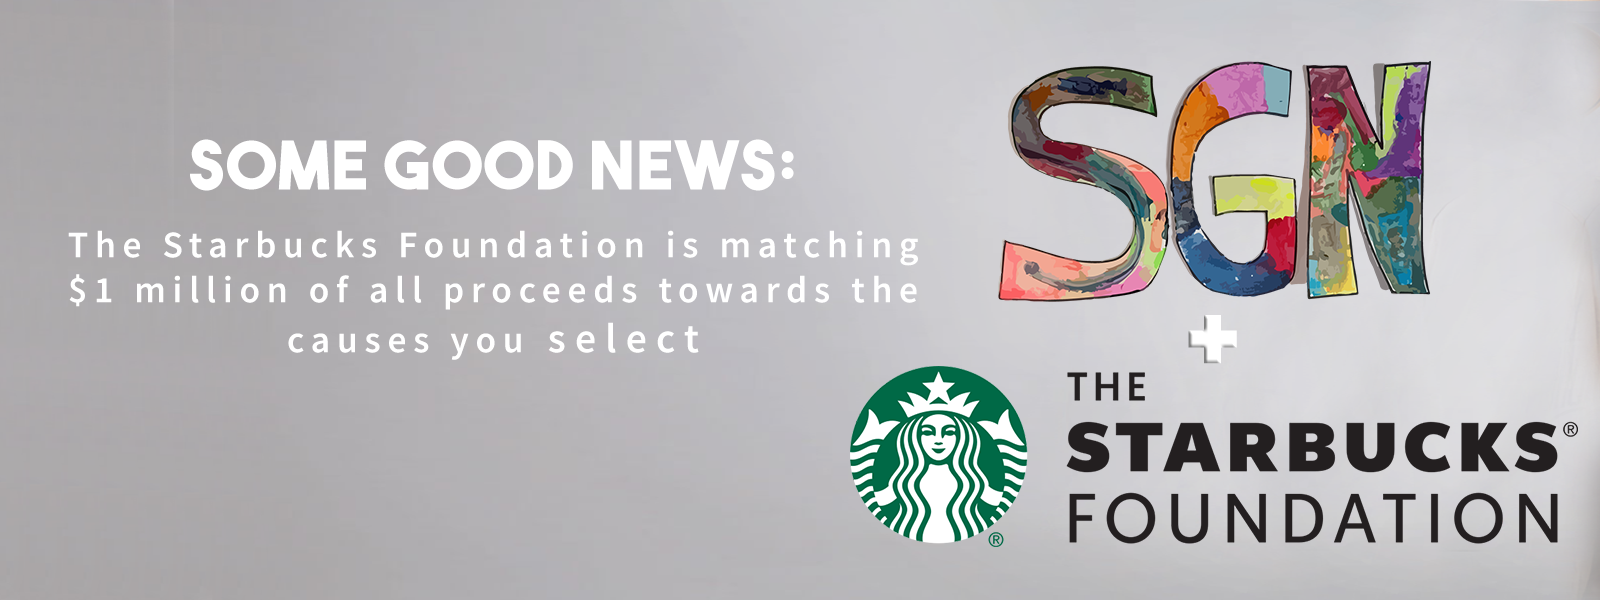 Some good news Seveny sevenly.org Starbucks